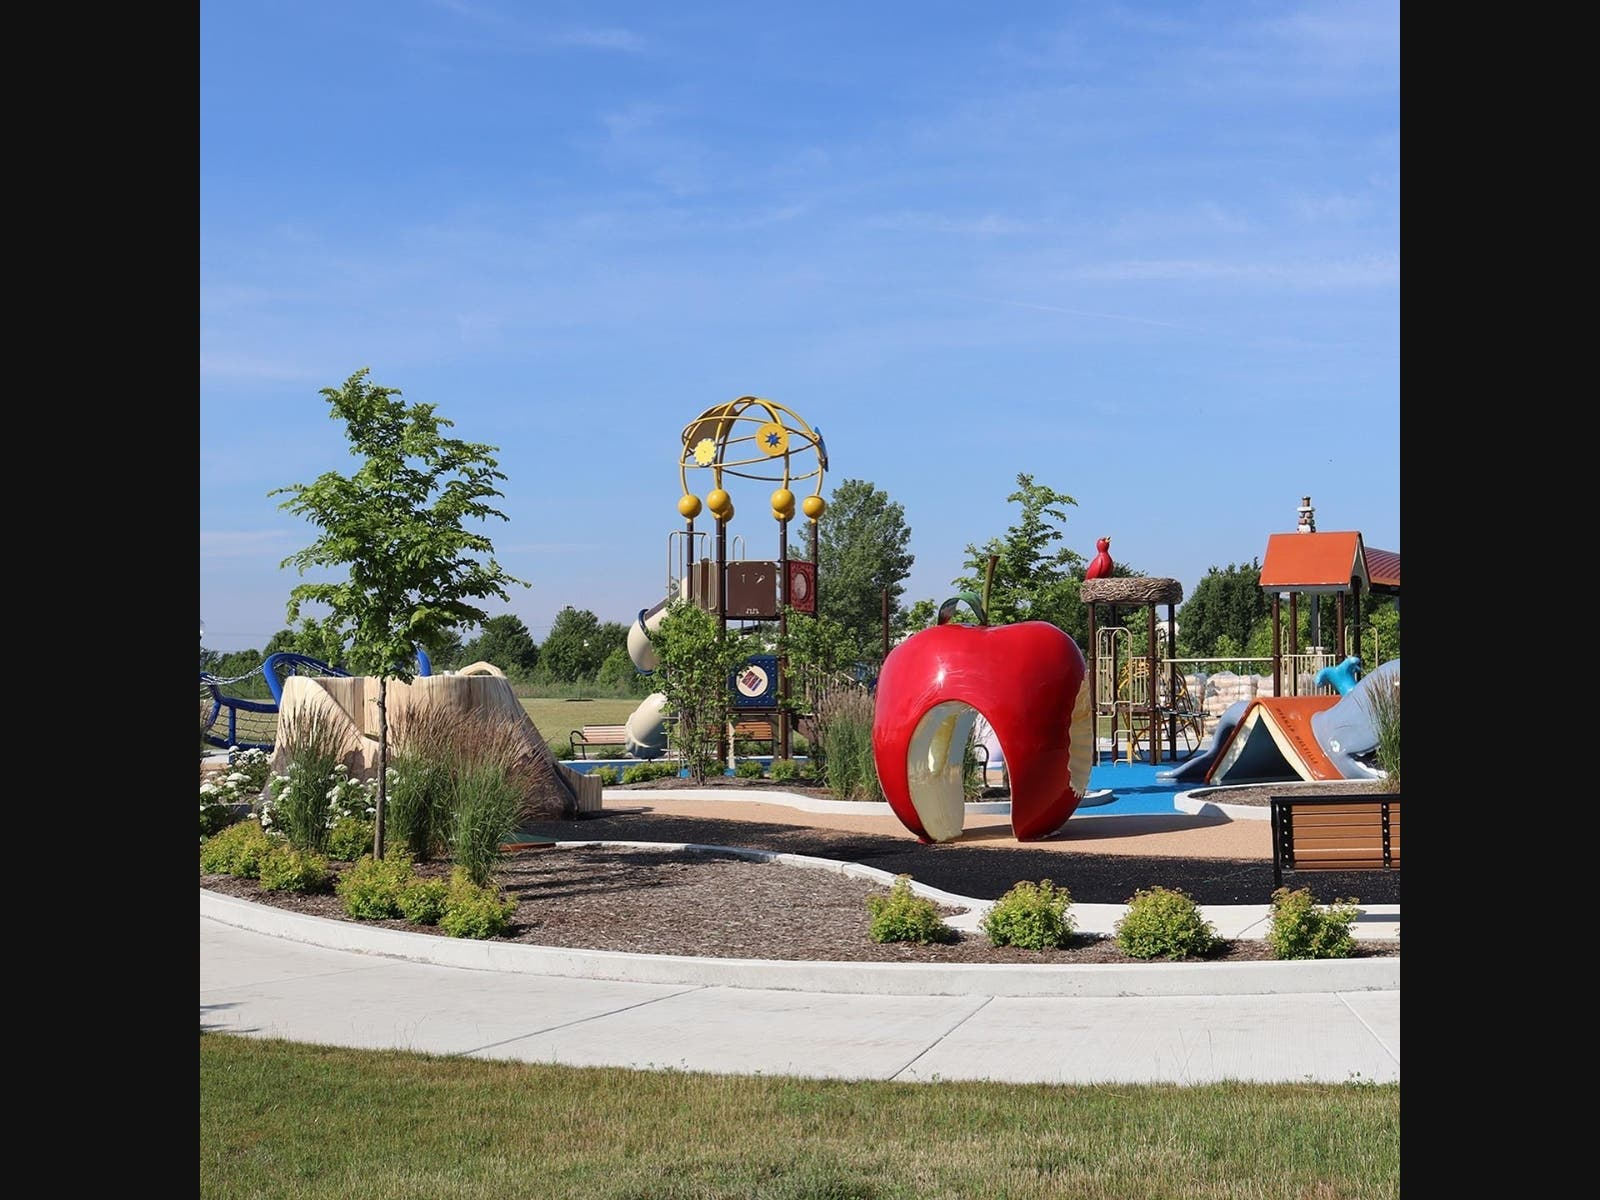 Naperville's 95th Street Community Plaza Opens July 4